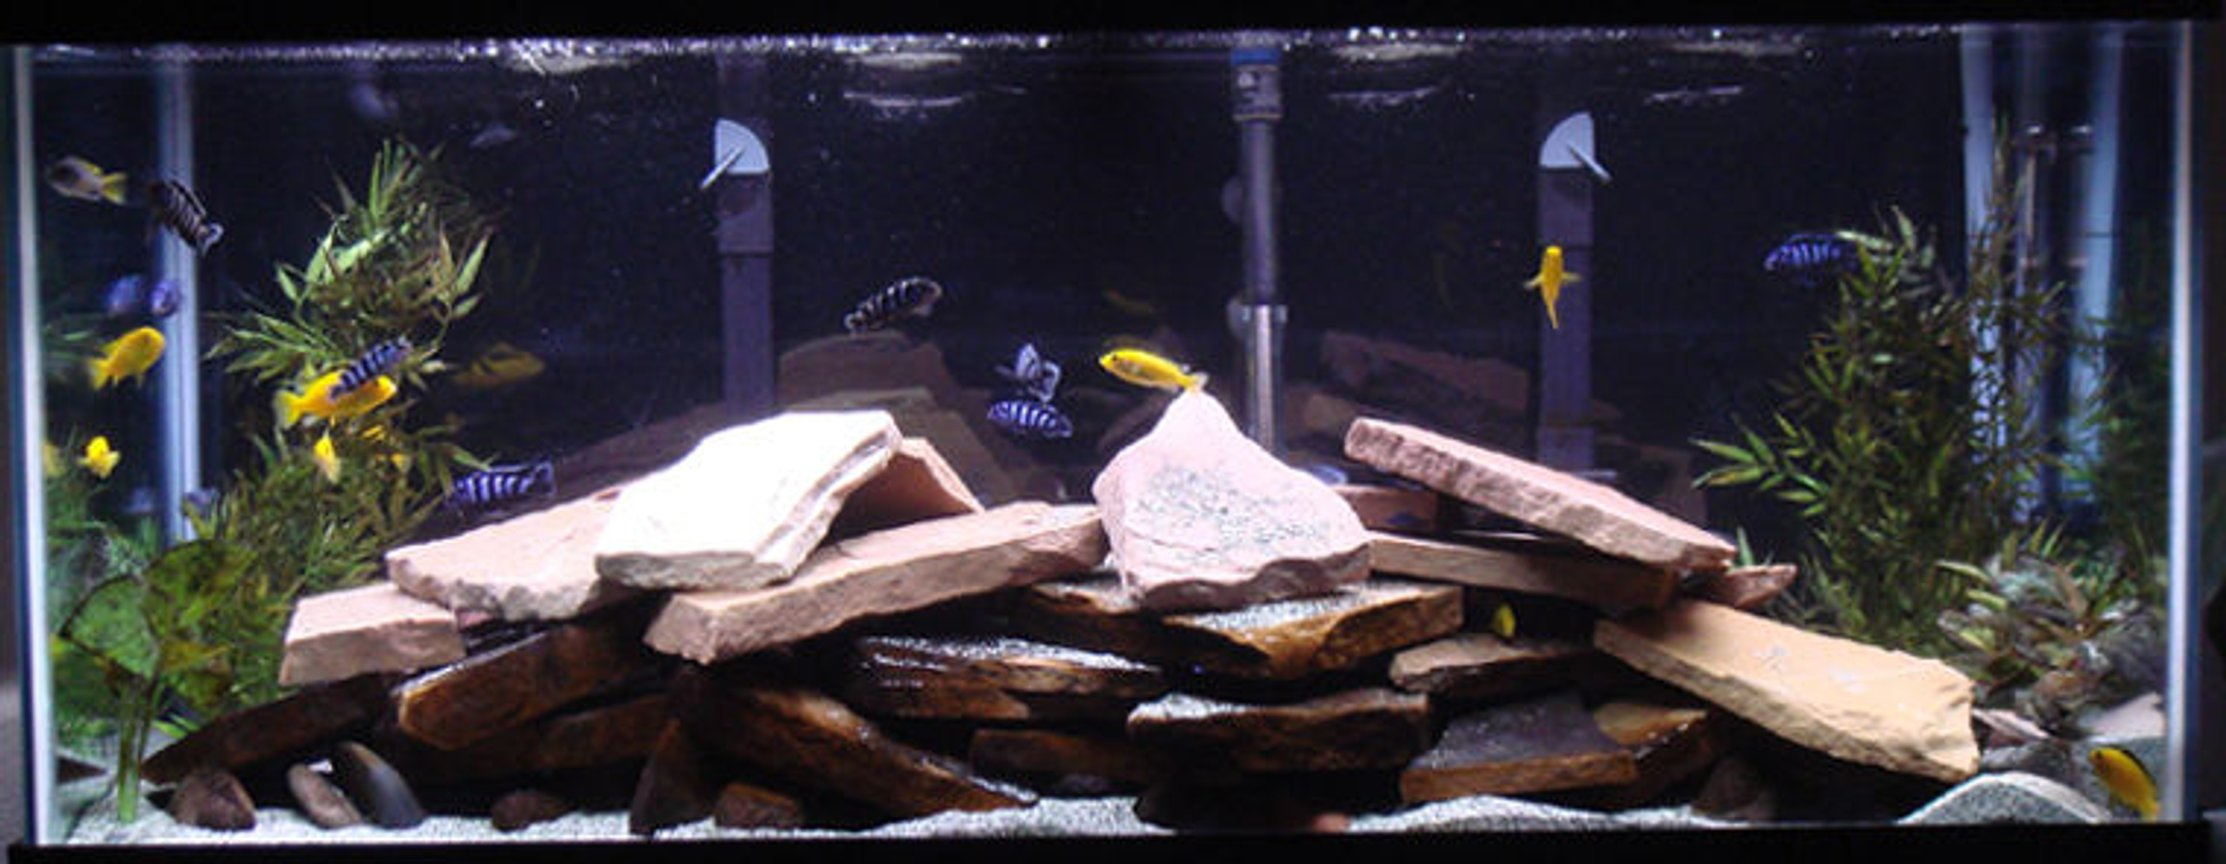 75 gallons freshwater fish tank (mostly fish and non-living decorations) - my 75 gallon mbuna tank